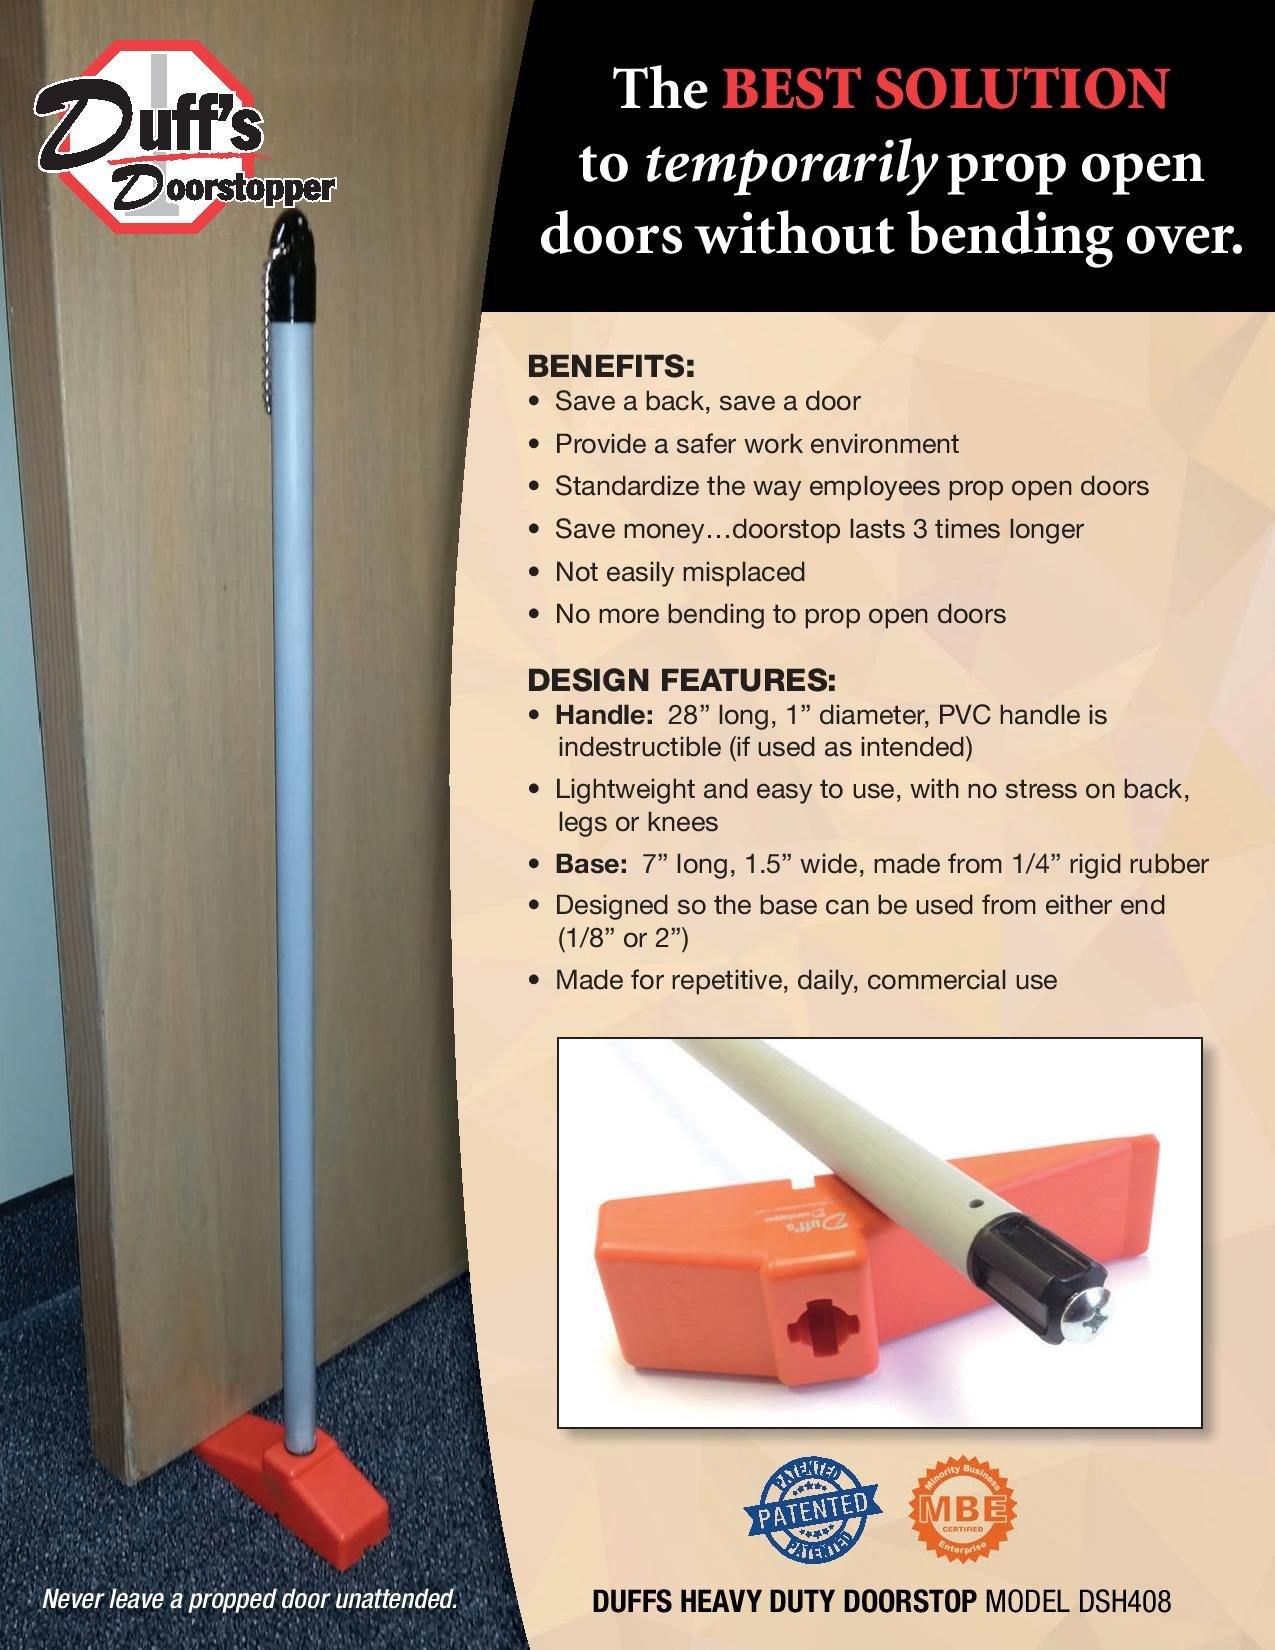 Duffs Heavy Duty Doorstop